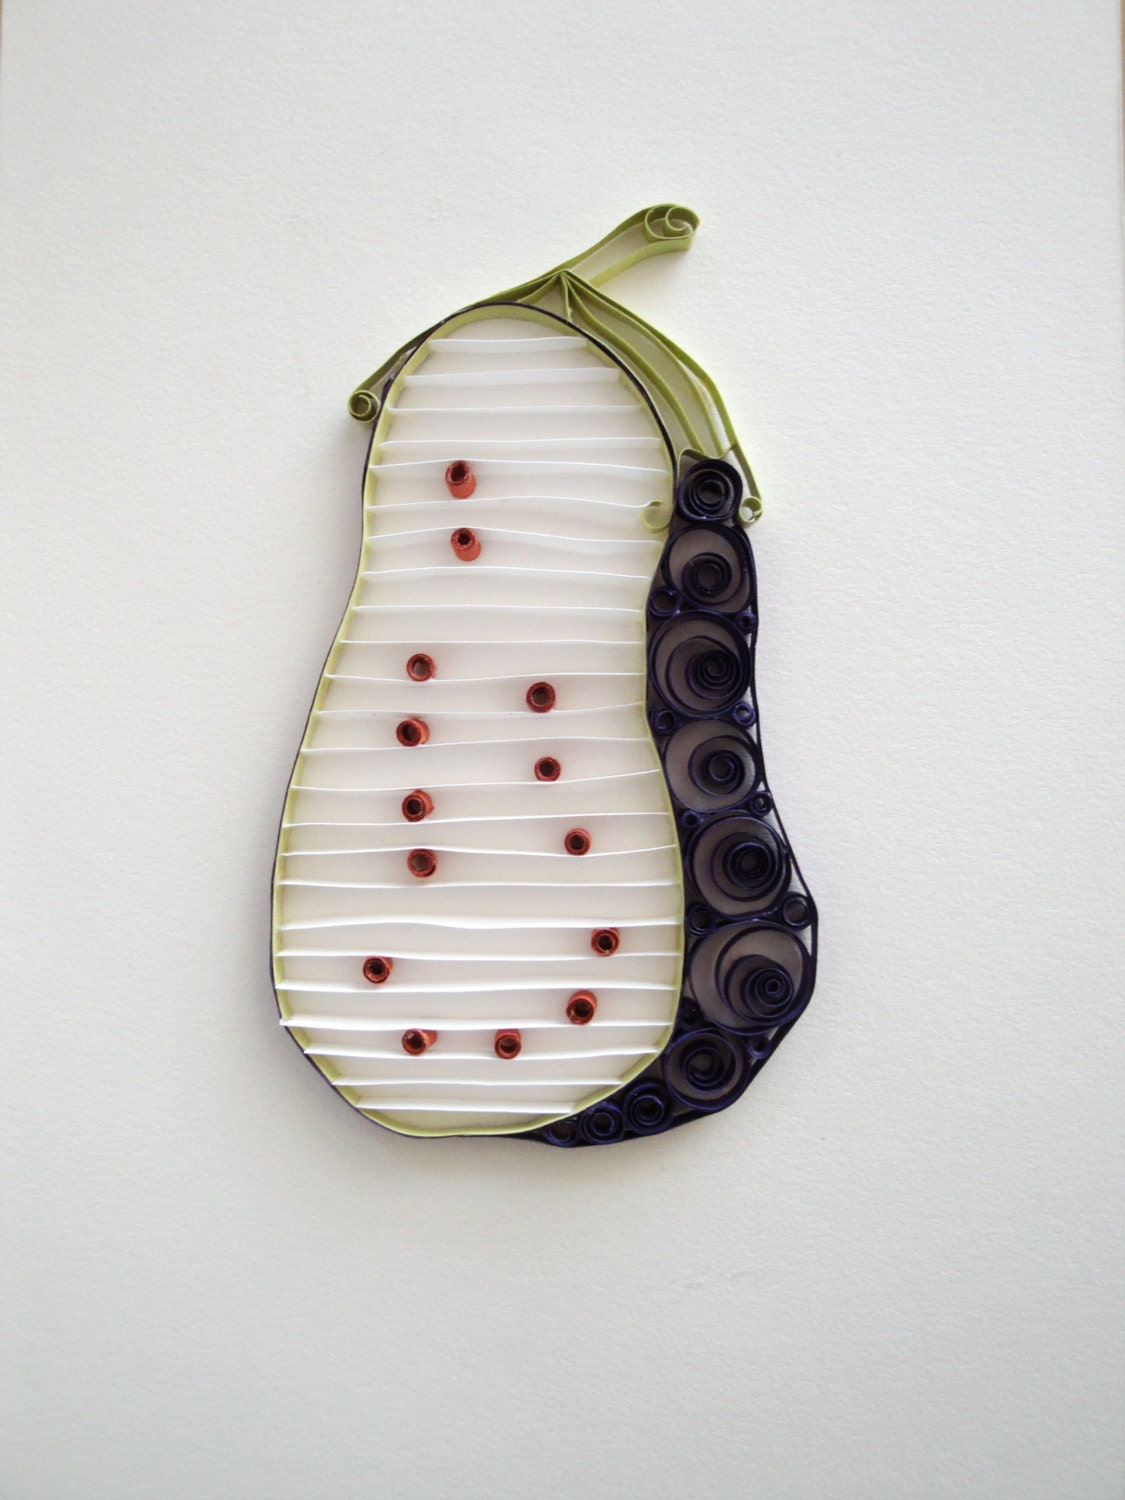 Quilled paper eggplant home decor wall decor by for Quilling home decor